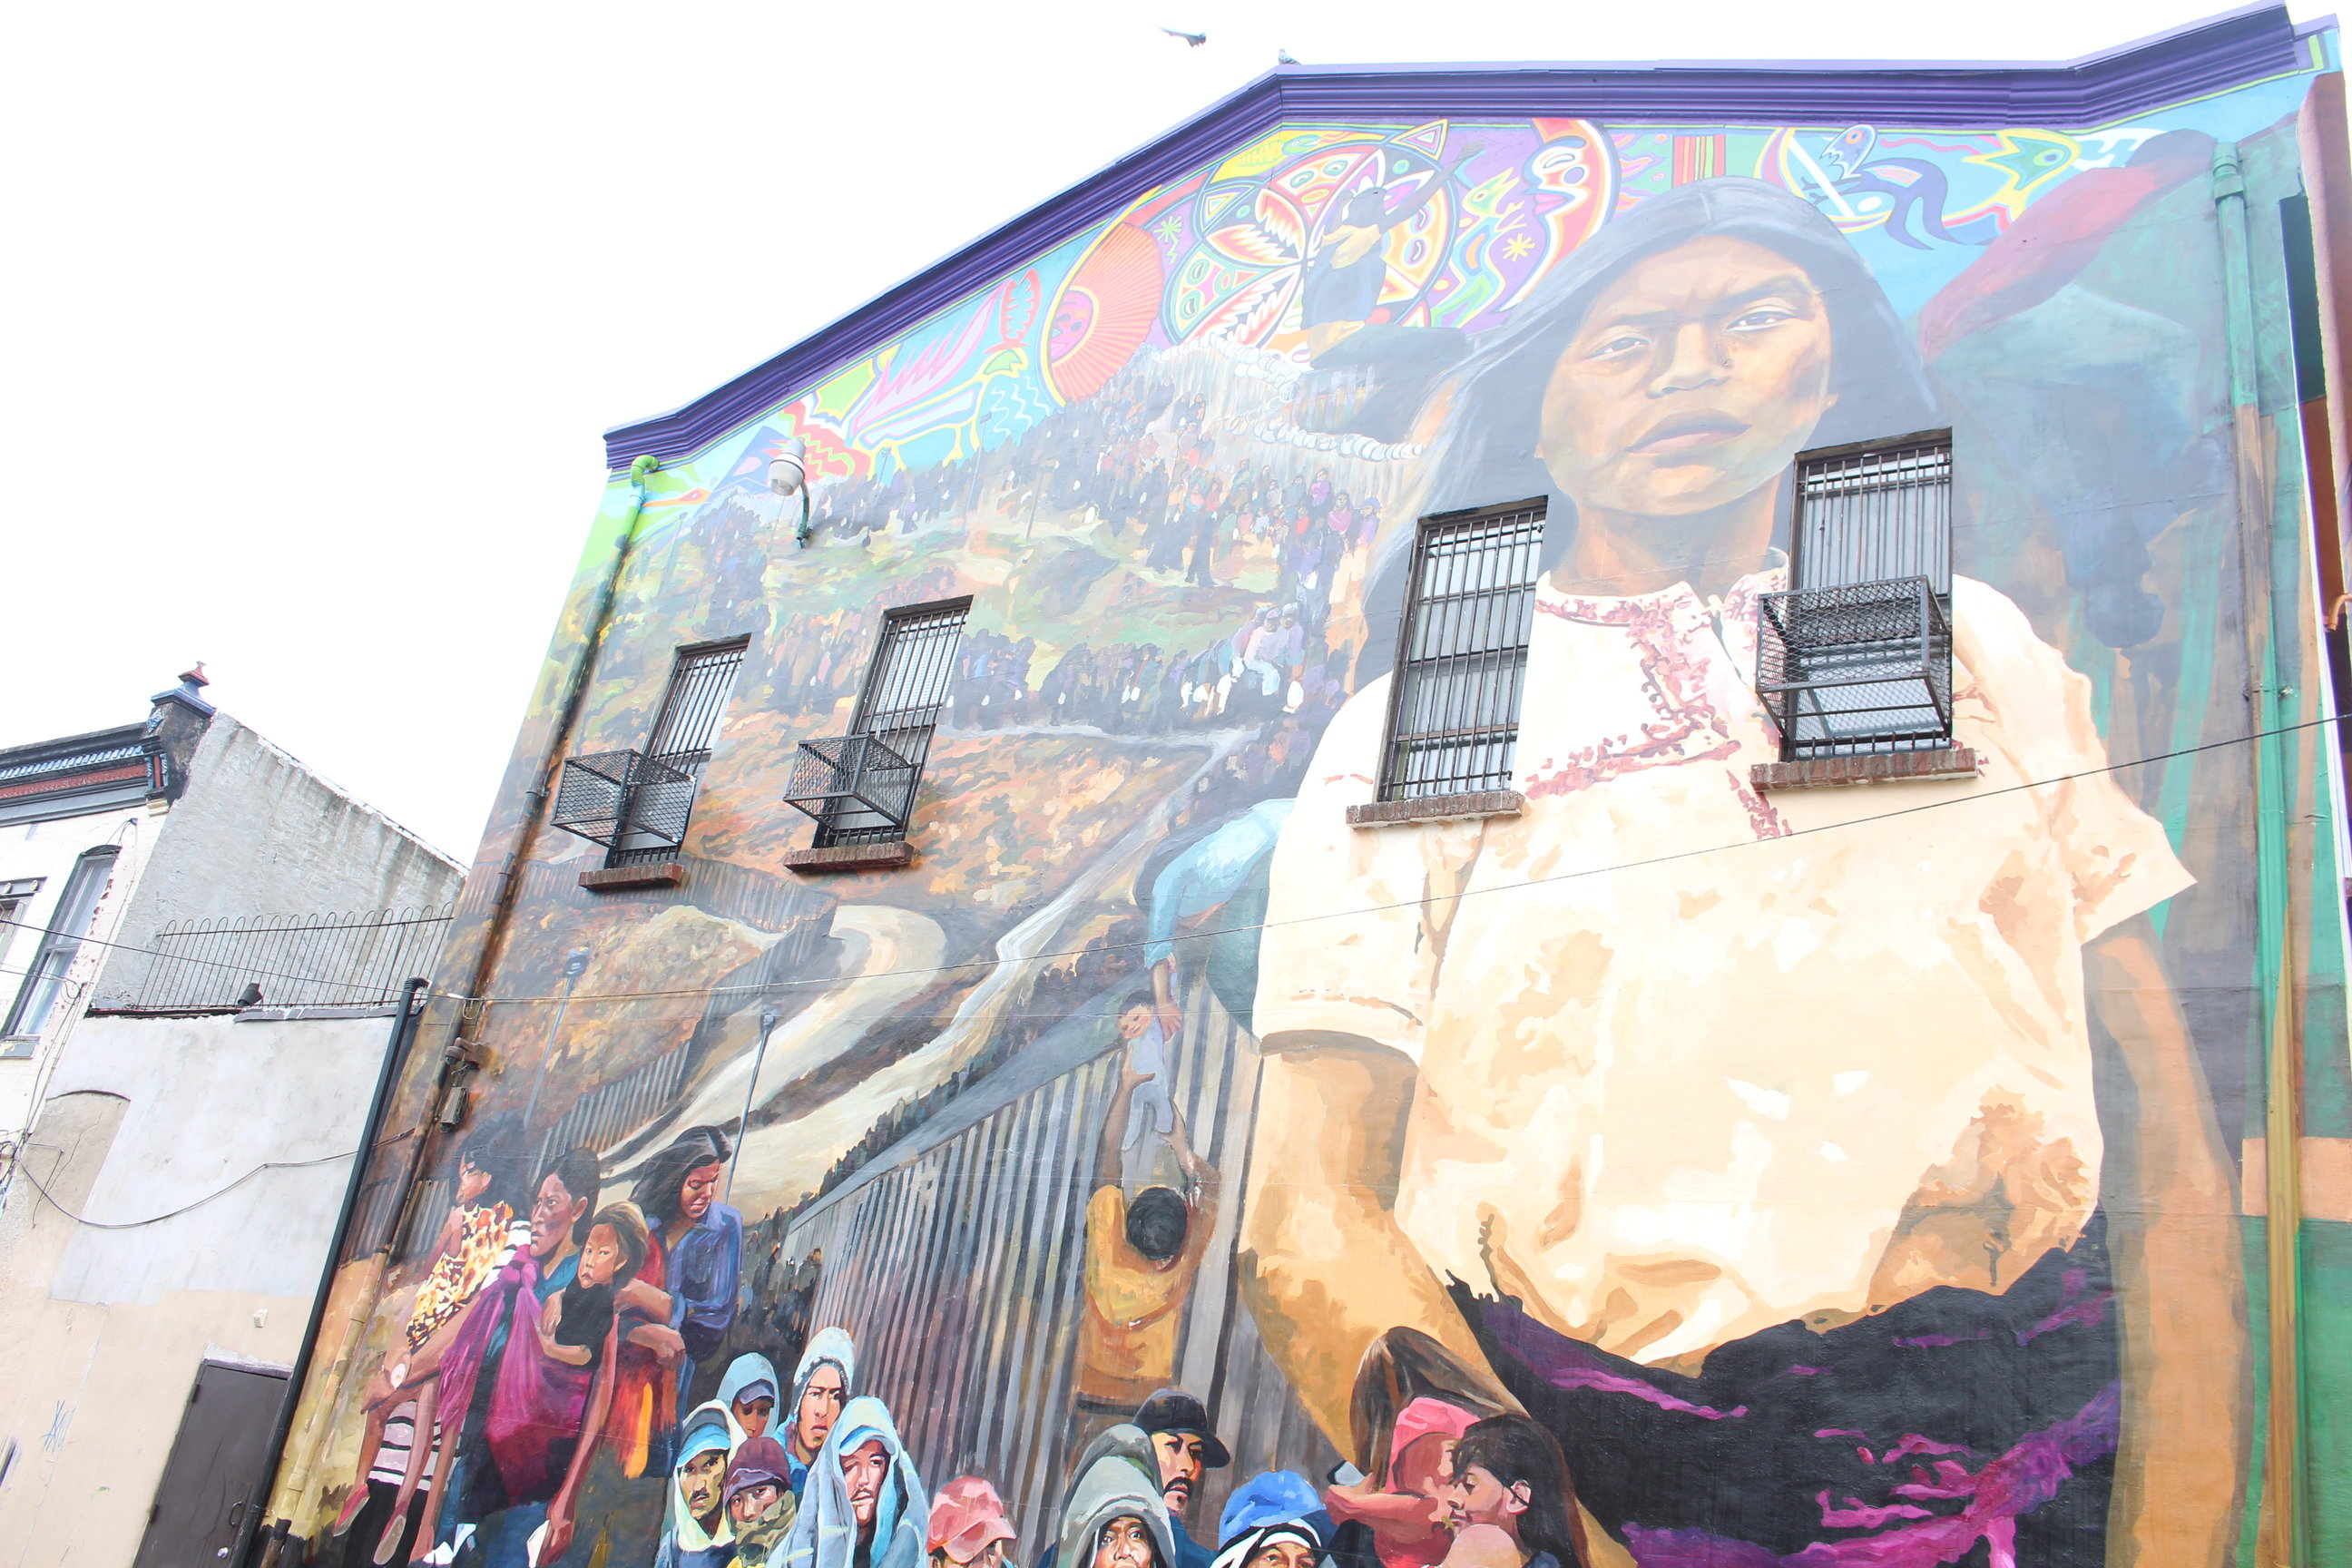 Mural outside of Providence Center. Photo: Jensen Toussaint/AL DÍA News.